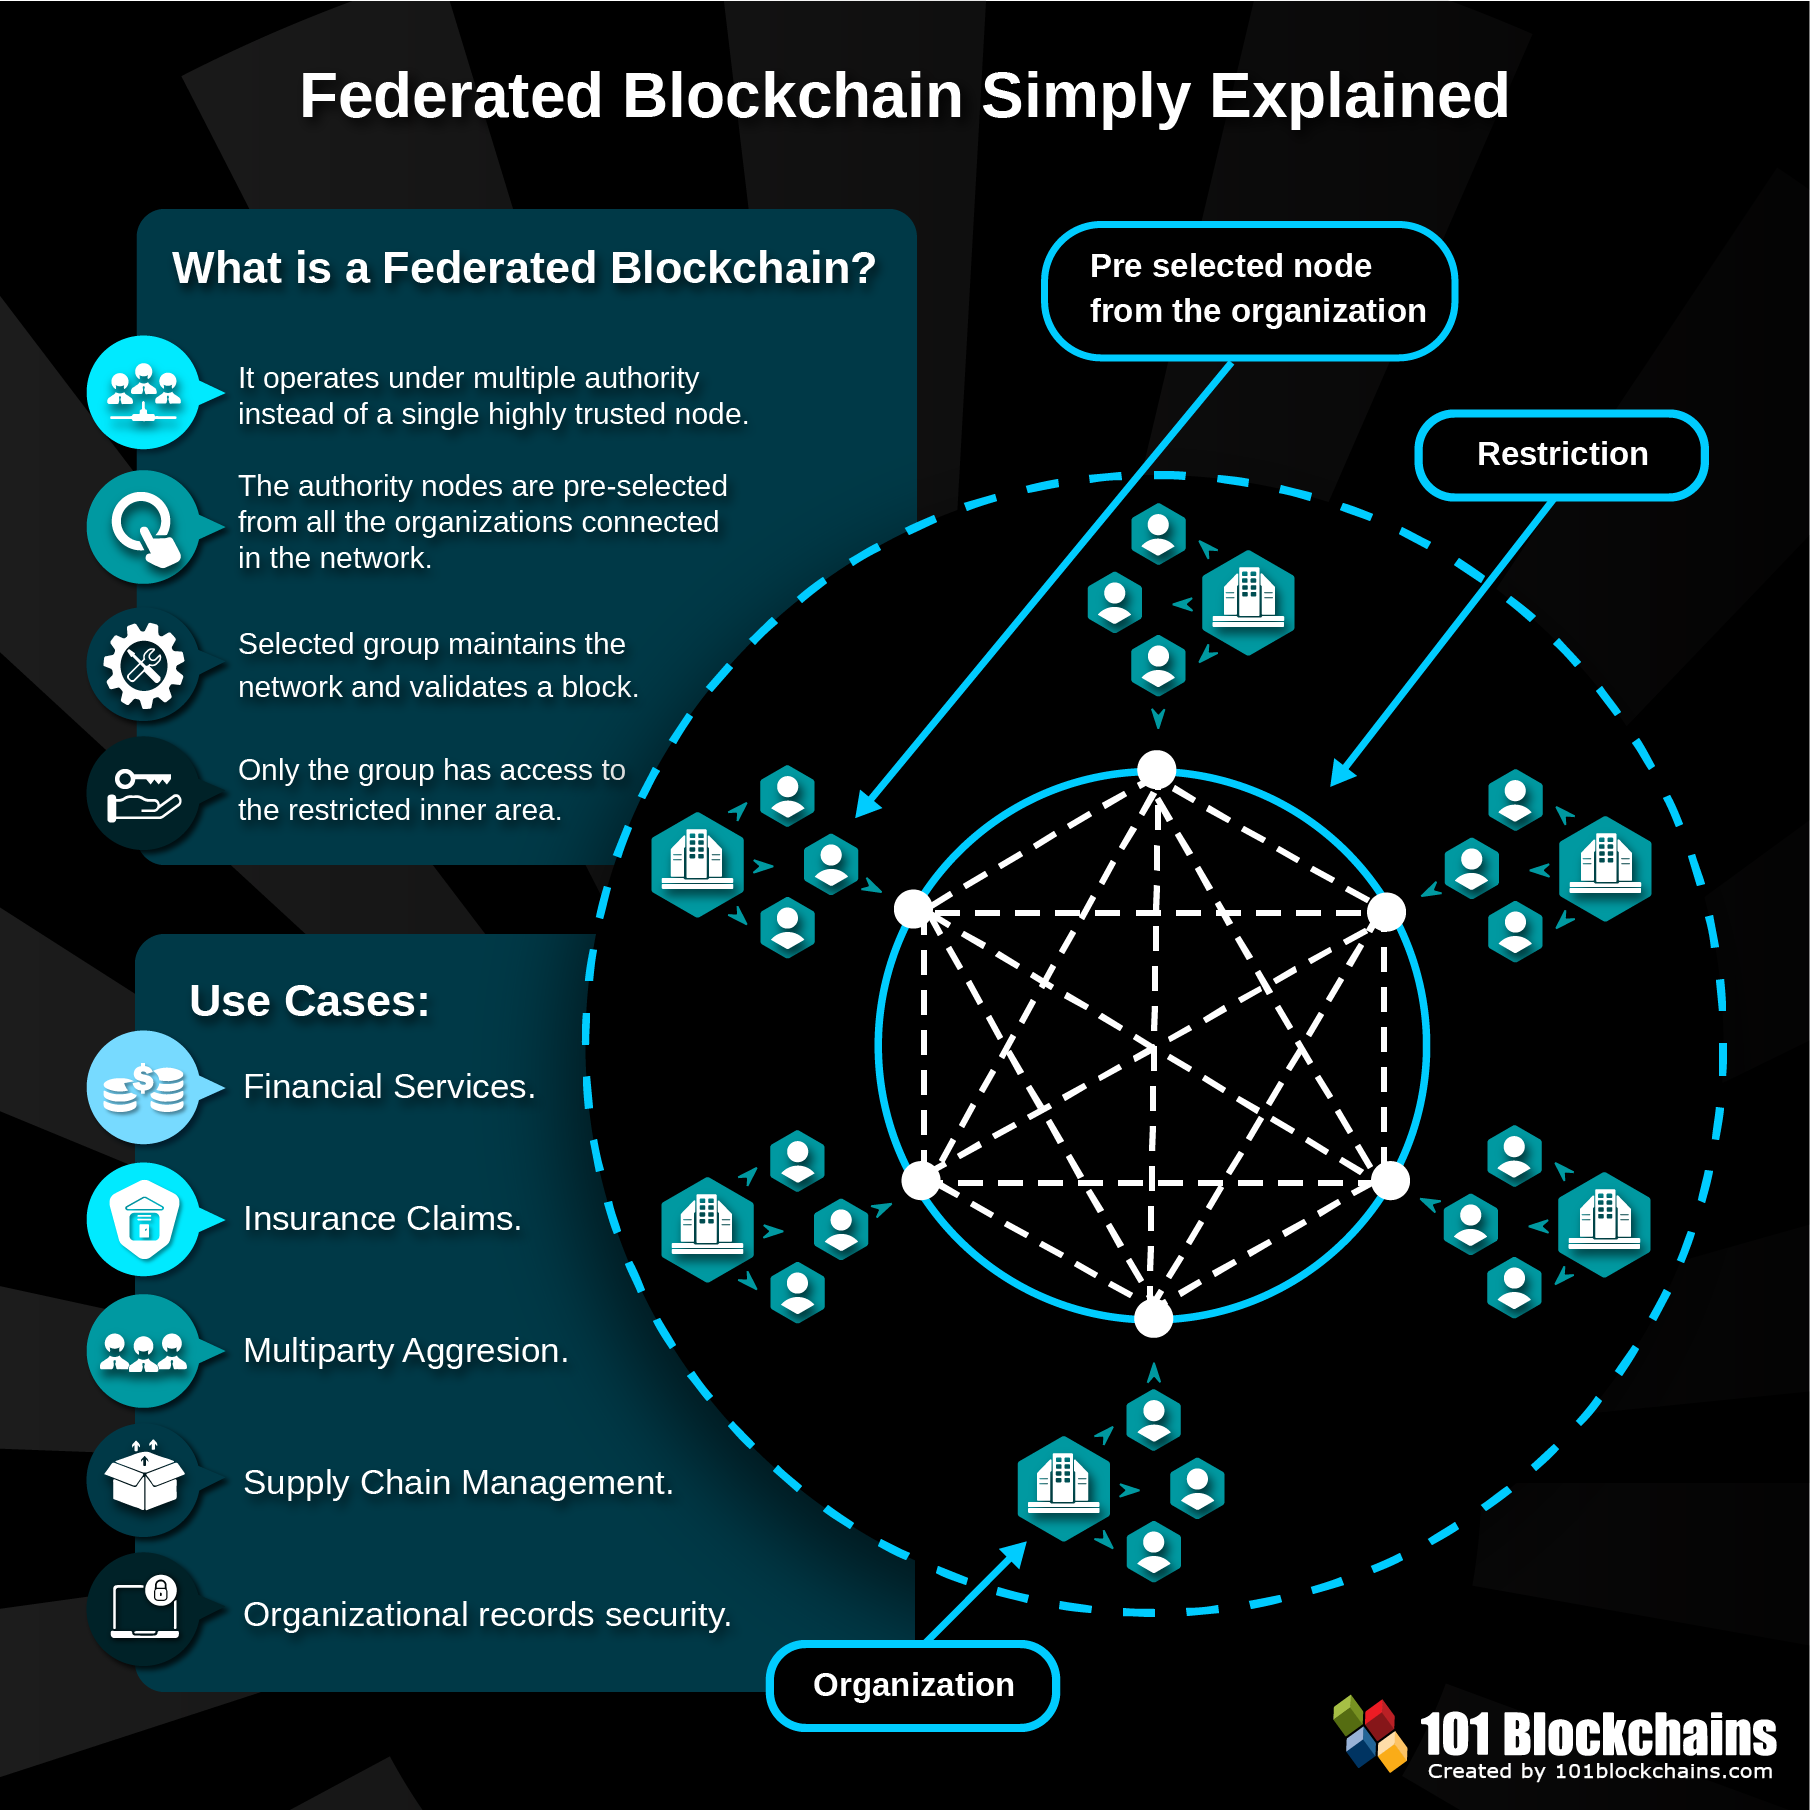 2019 The Year Of The Federated Blockchain Blockchain Consortium Simply Explained In 2021 Blockchain Blockchain Technology Technology Trends